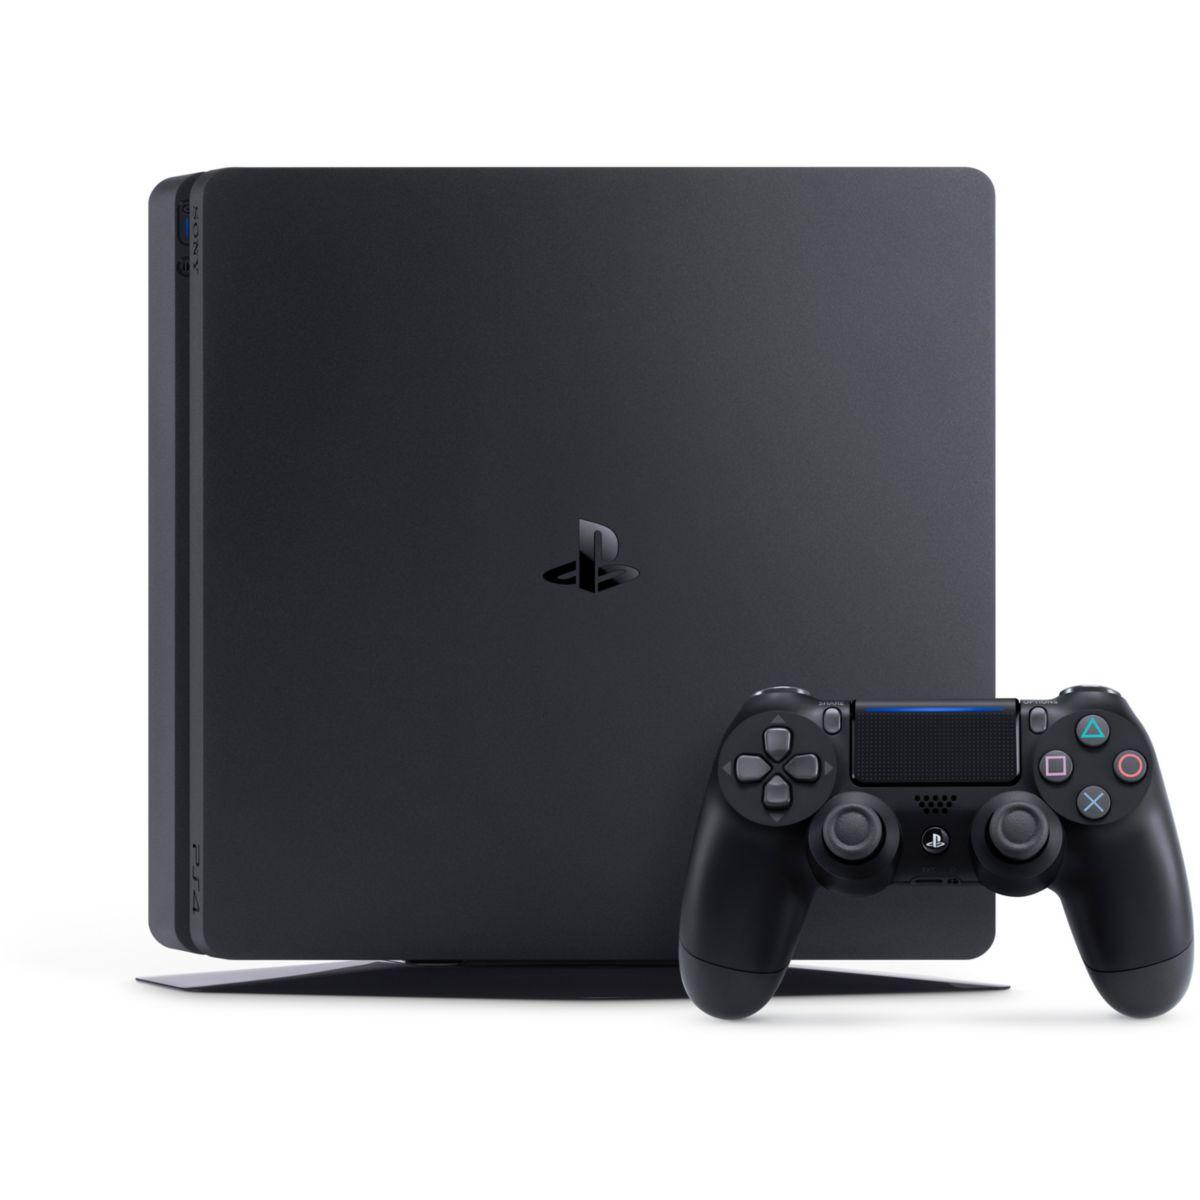 Console Sony Playstation 4 Slim 1To + Manette + Uncharted 4 - Noir